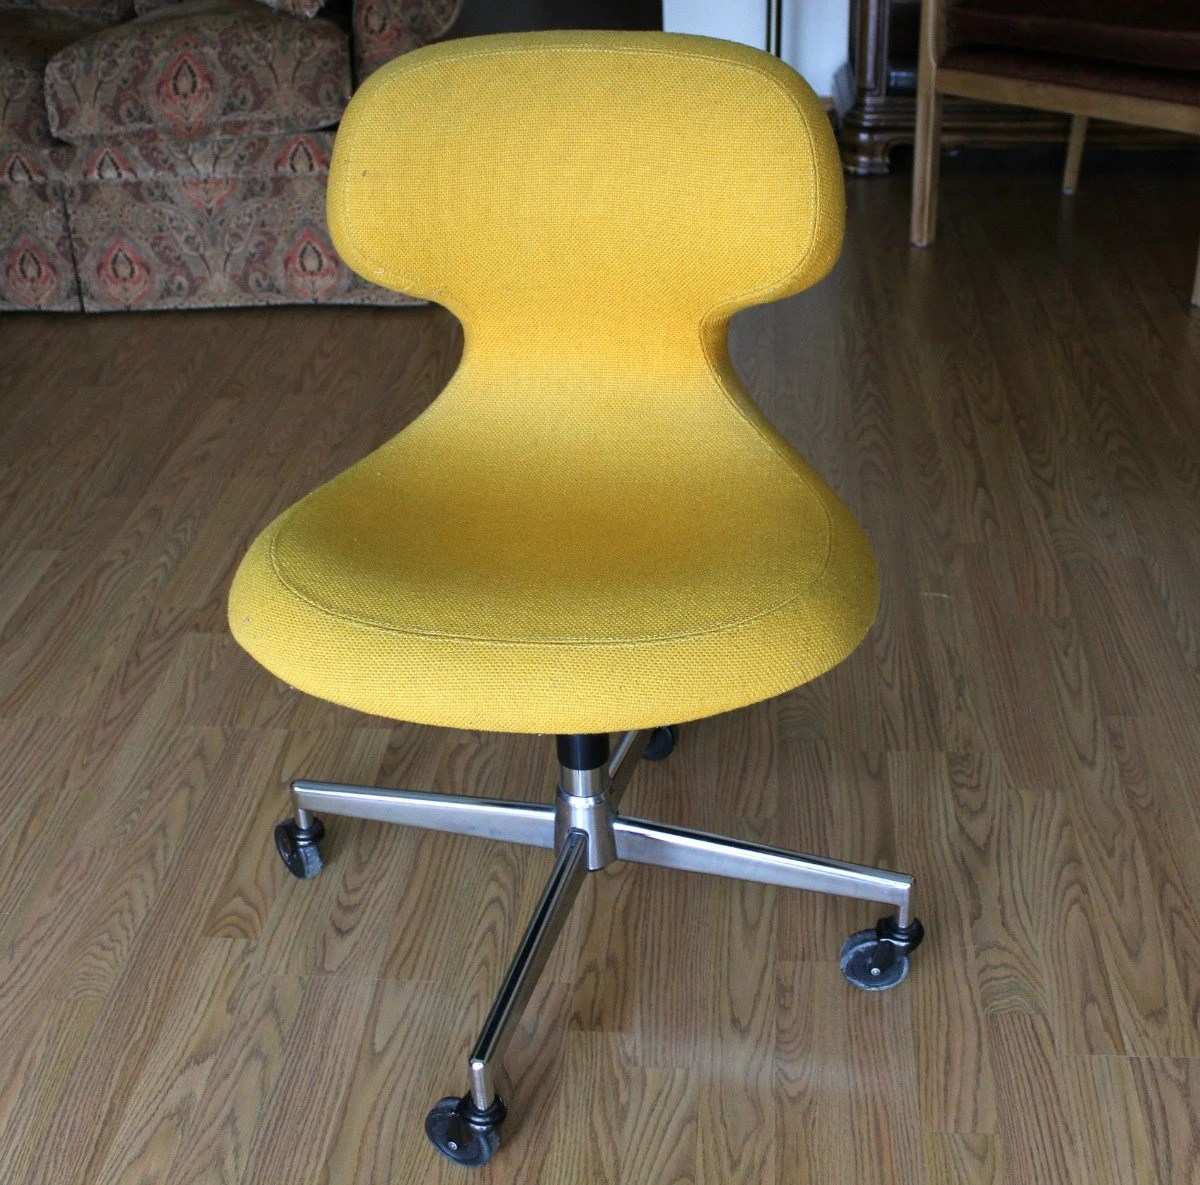 Yellow Egg Chair Vintage Harter Office Chair Ergonomic Mid Century Modern